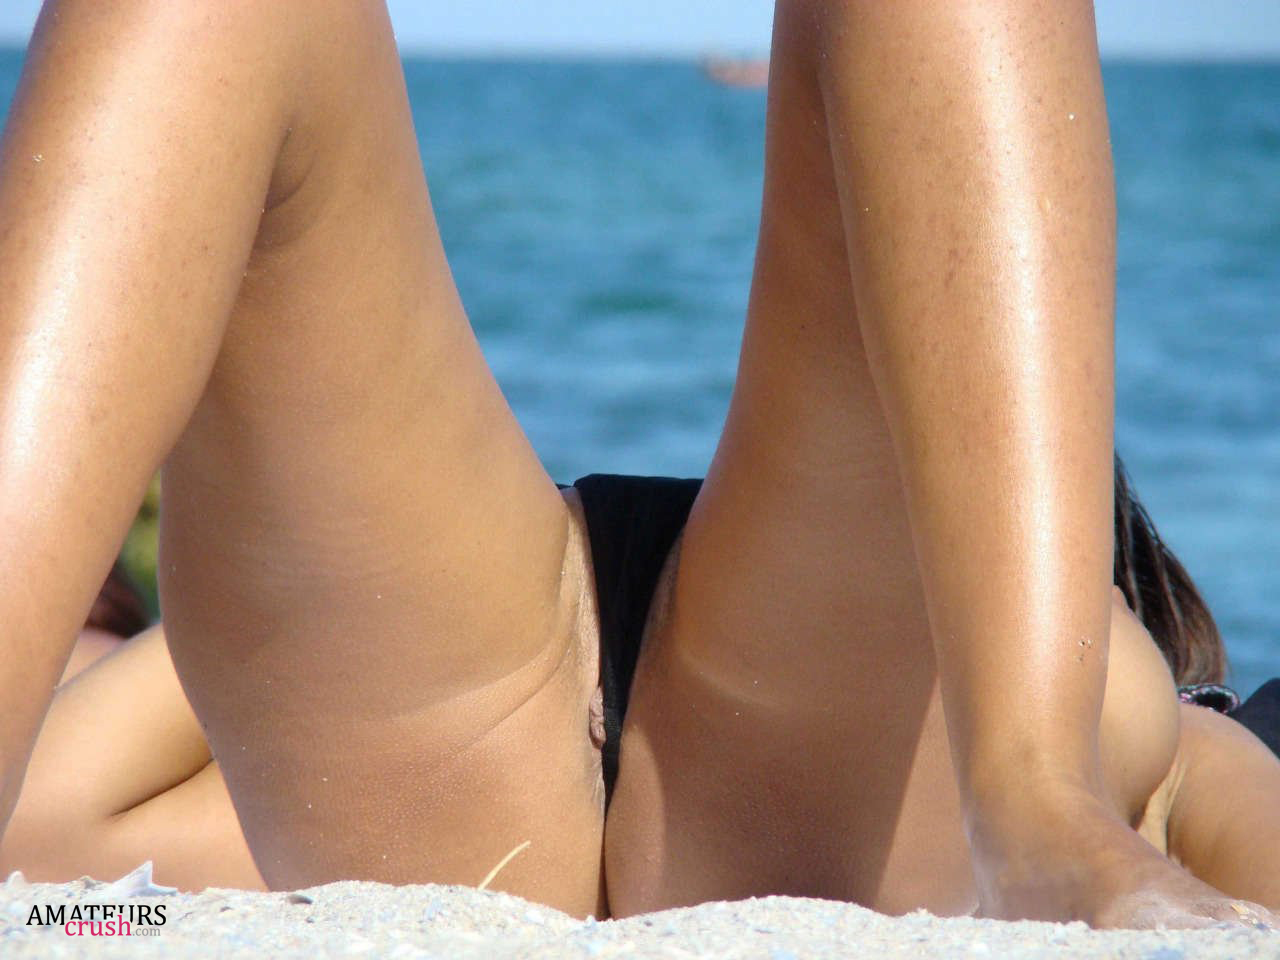 voyeur candid panty pusy slip ... a nice close up of little pussy slip at the beach while tanning with  her knees ...